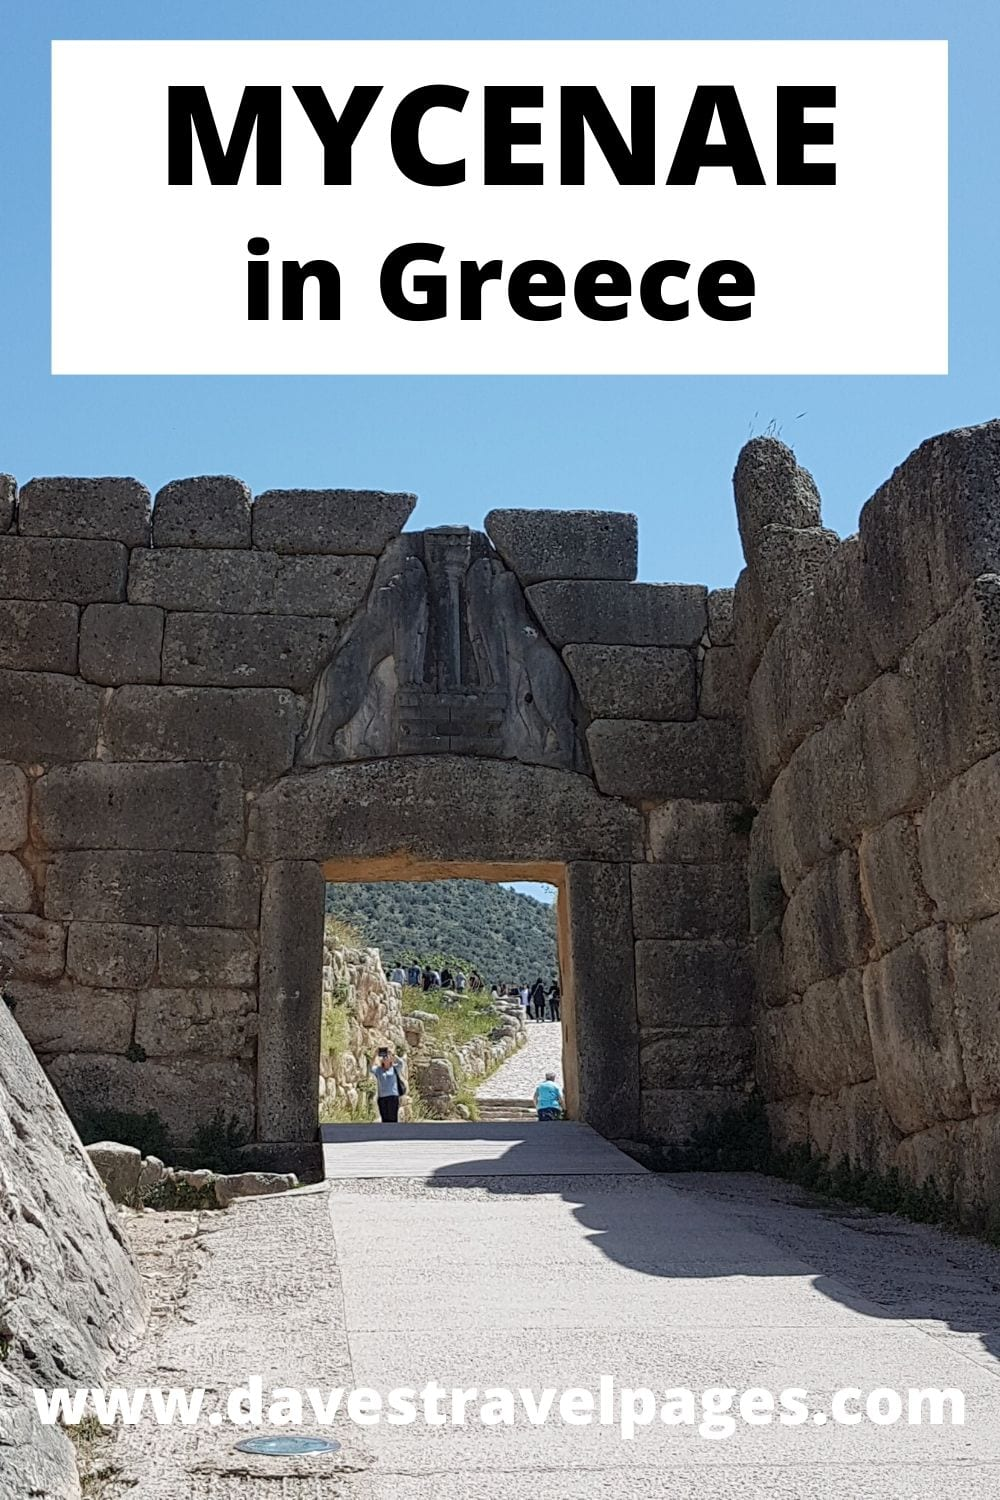 The Lion Gate at Mycenae in Greece